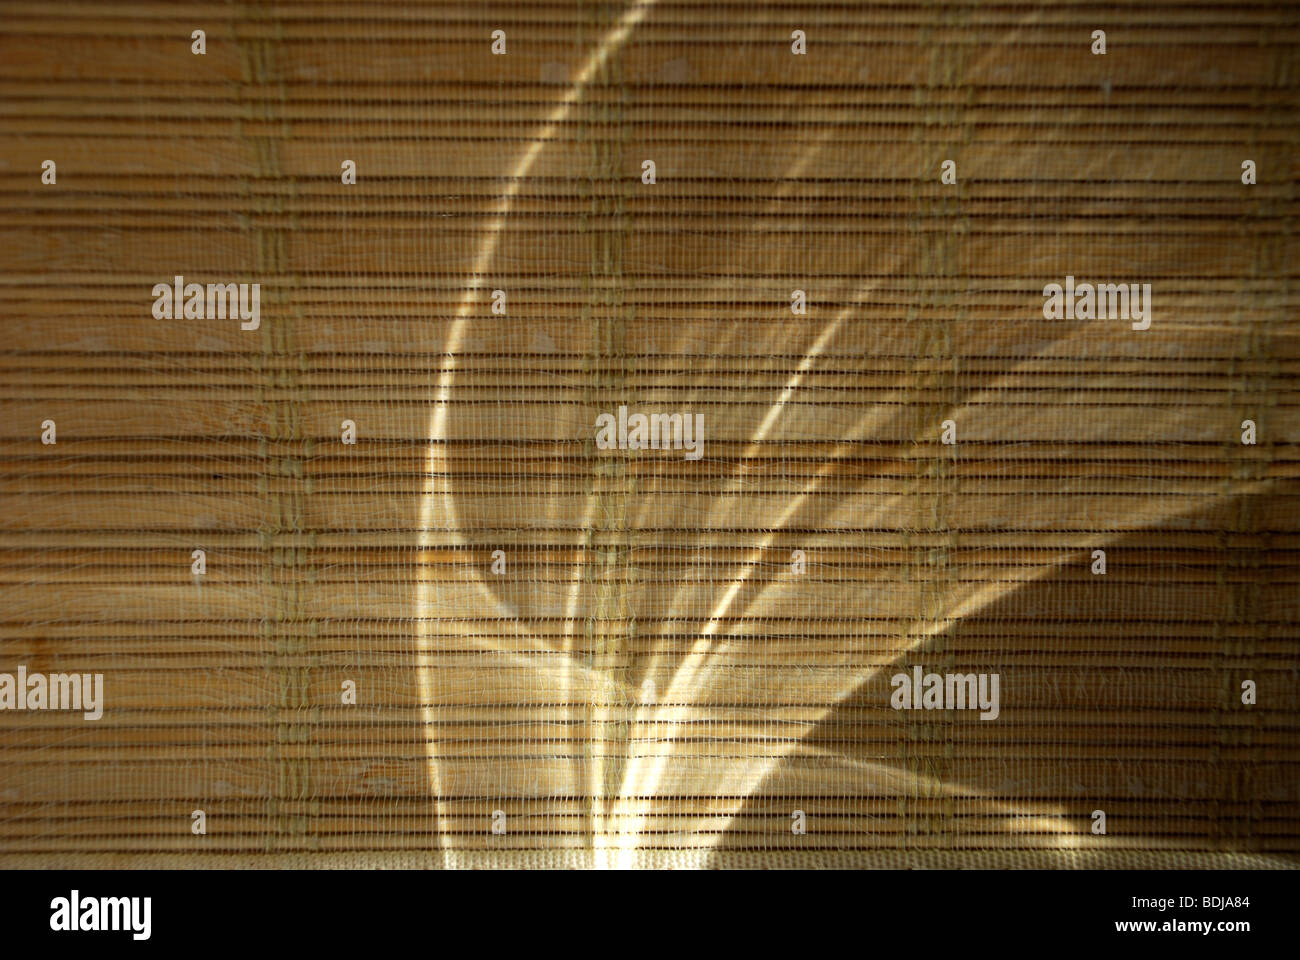 Light reflecting on bamboo shade - Stock Image